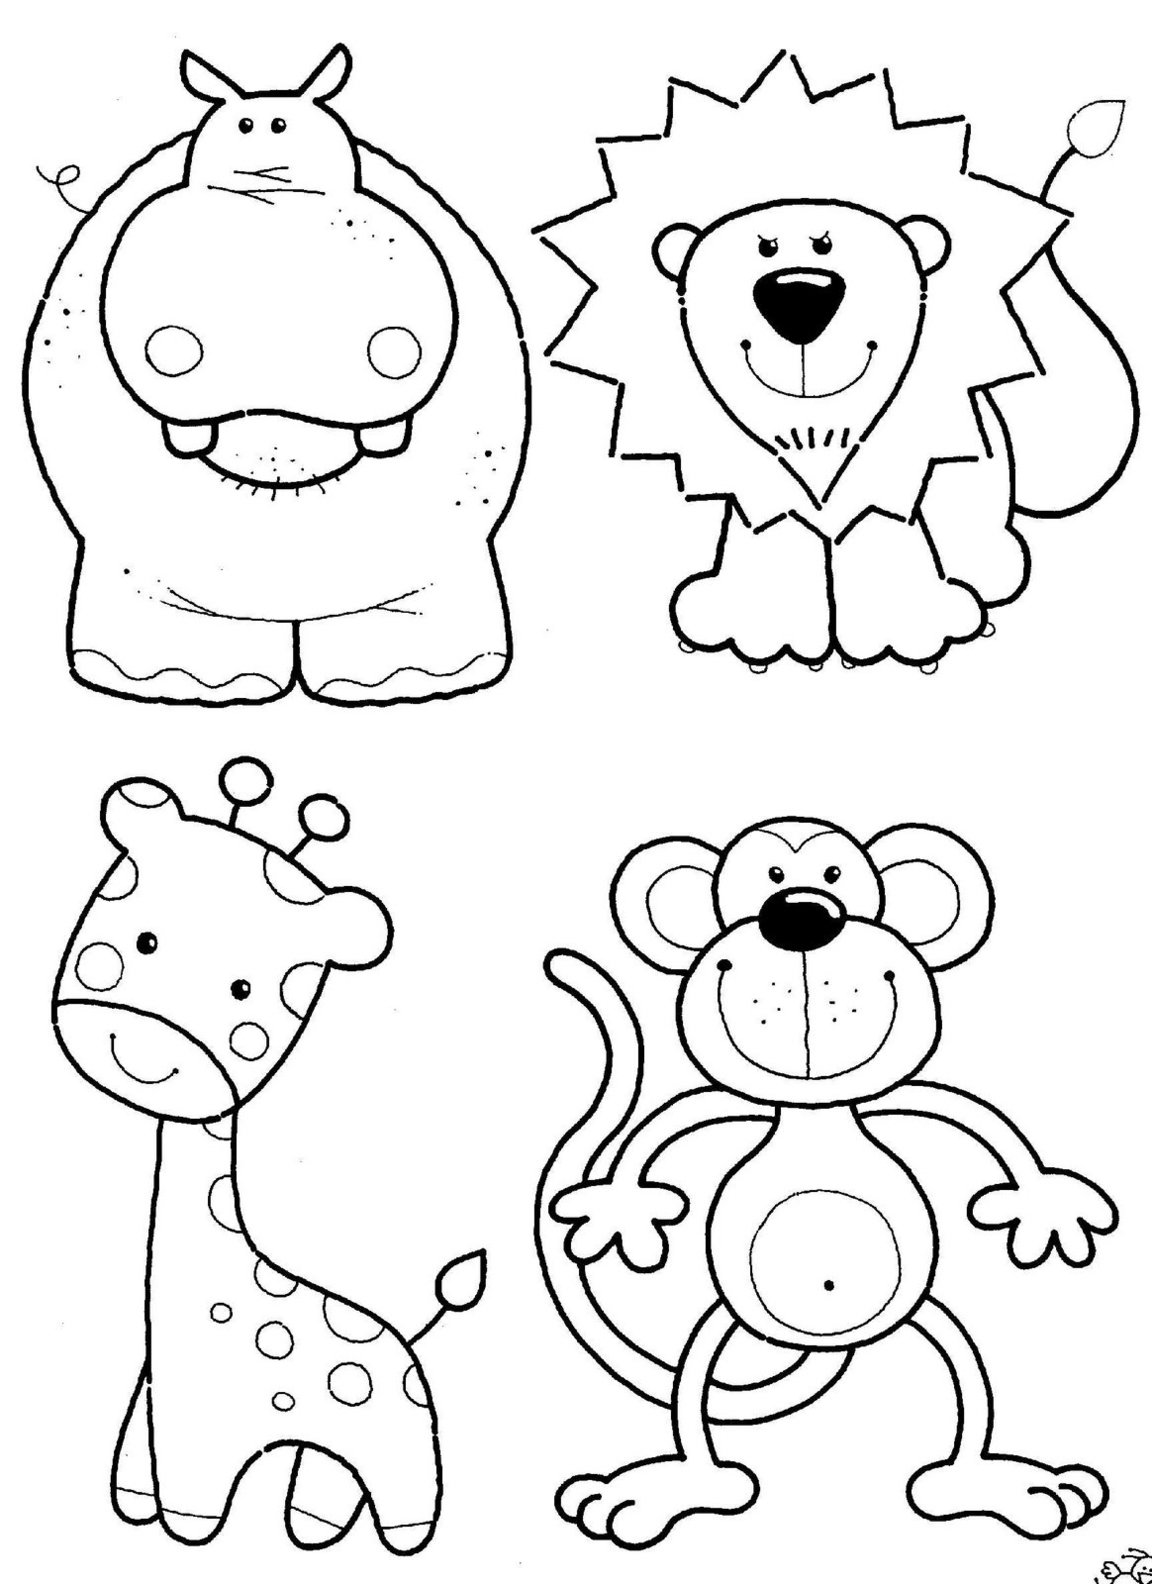 animal coloring pages cute jungle animals coloring page animal pages coloring